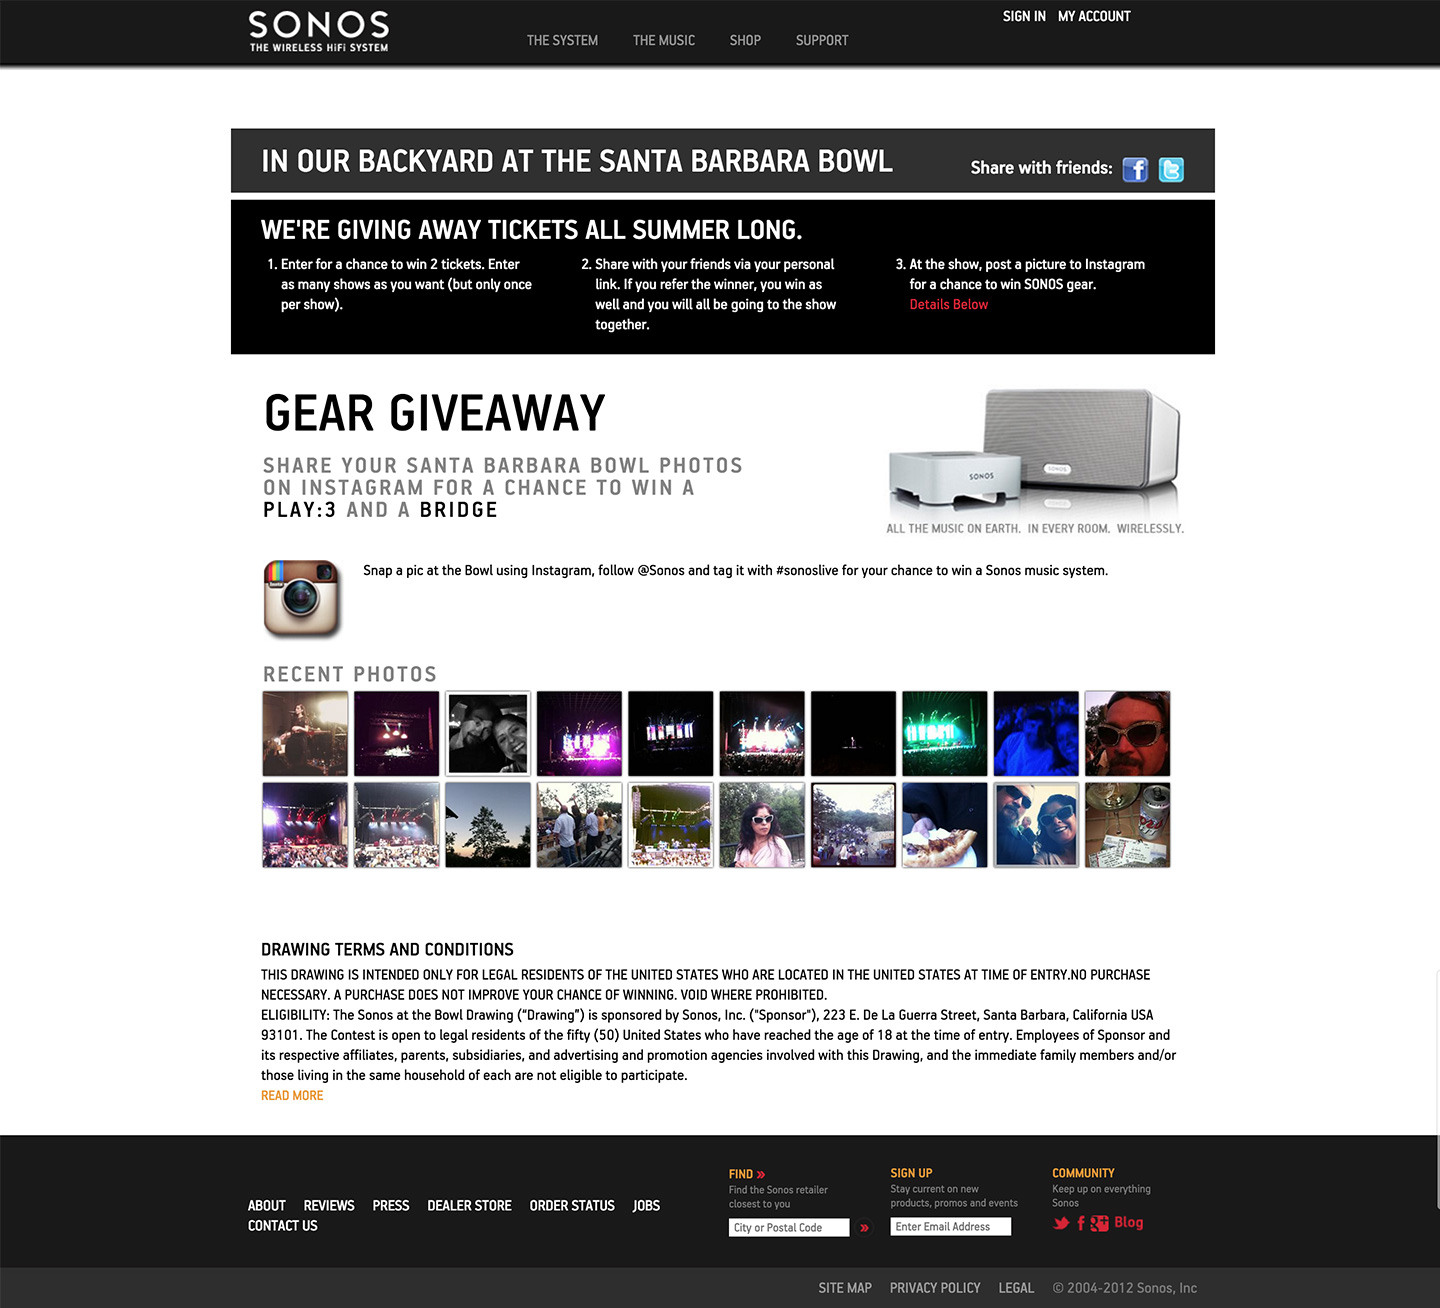 Sonos website built by Aquatic in San Francisco